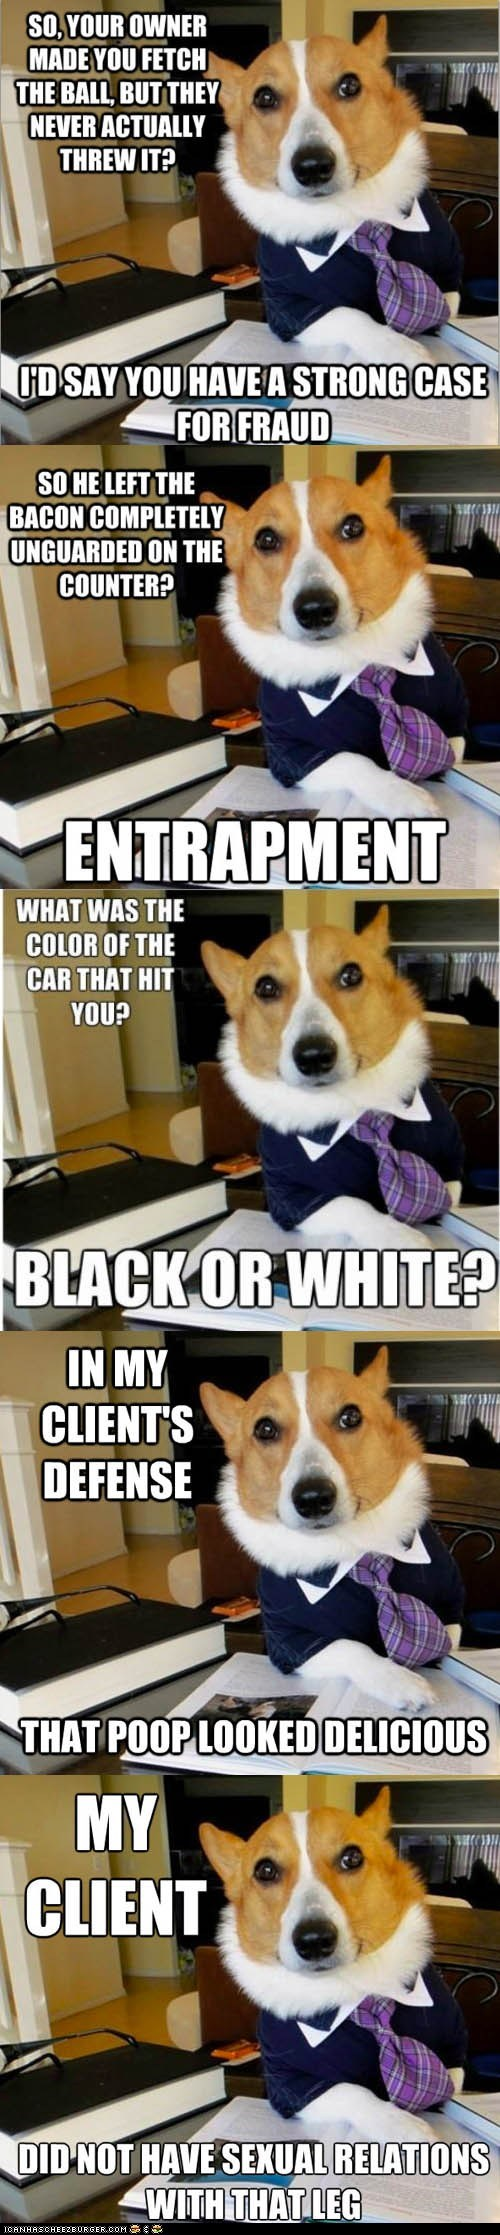 Animal Memes: Meet Lawyer Dog